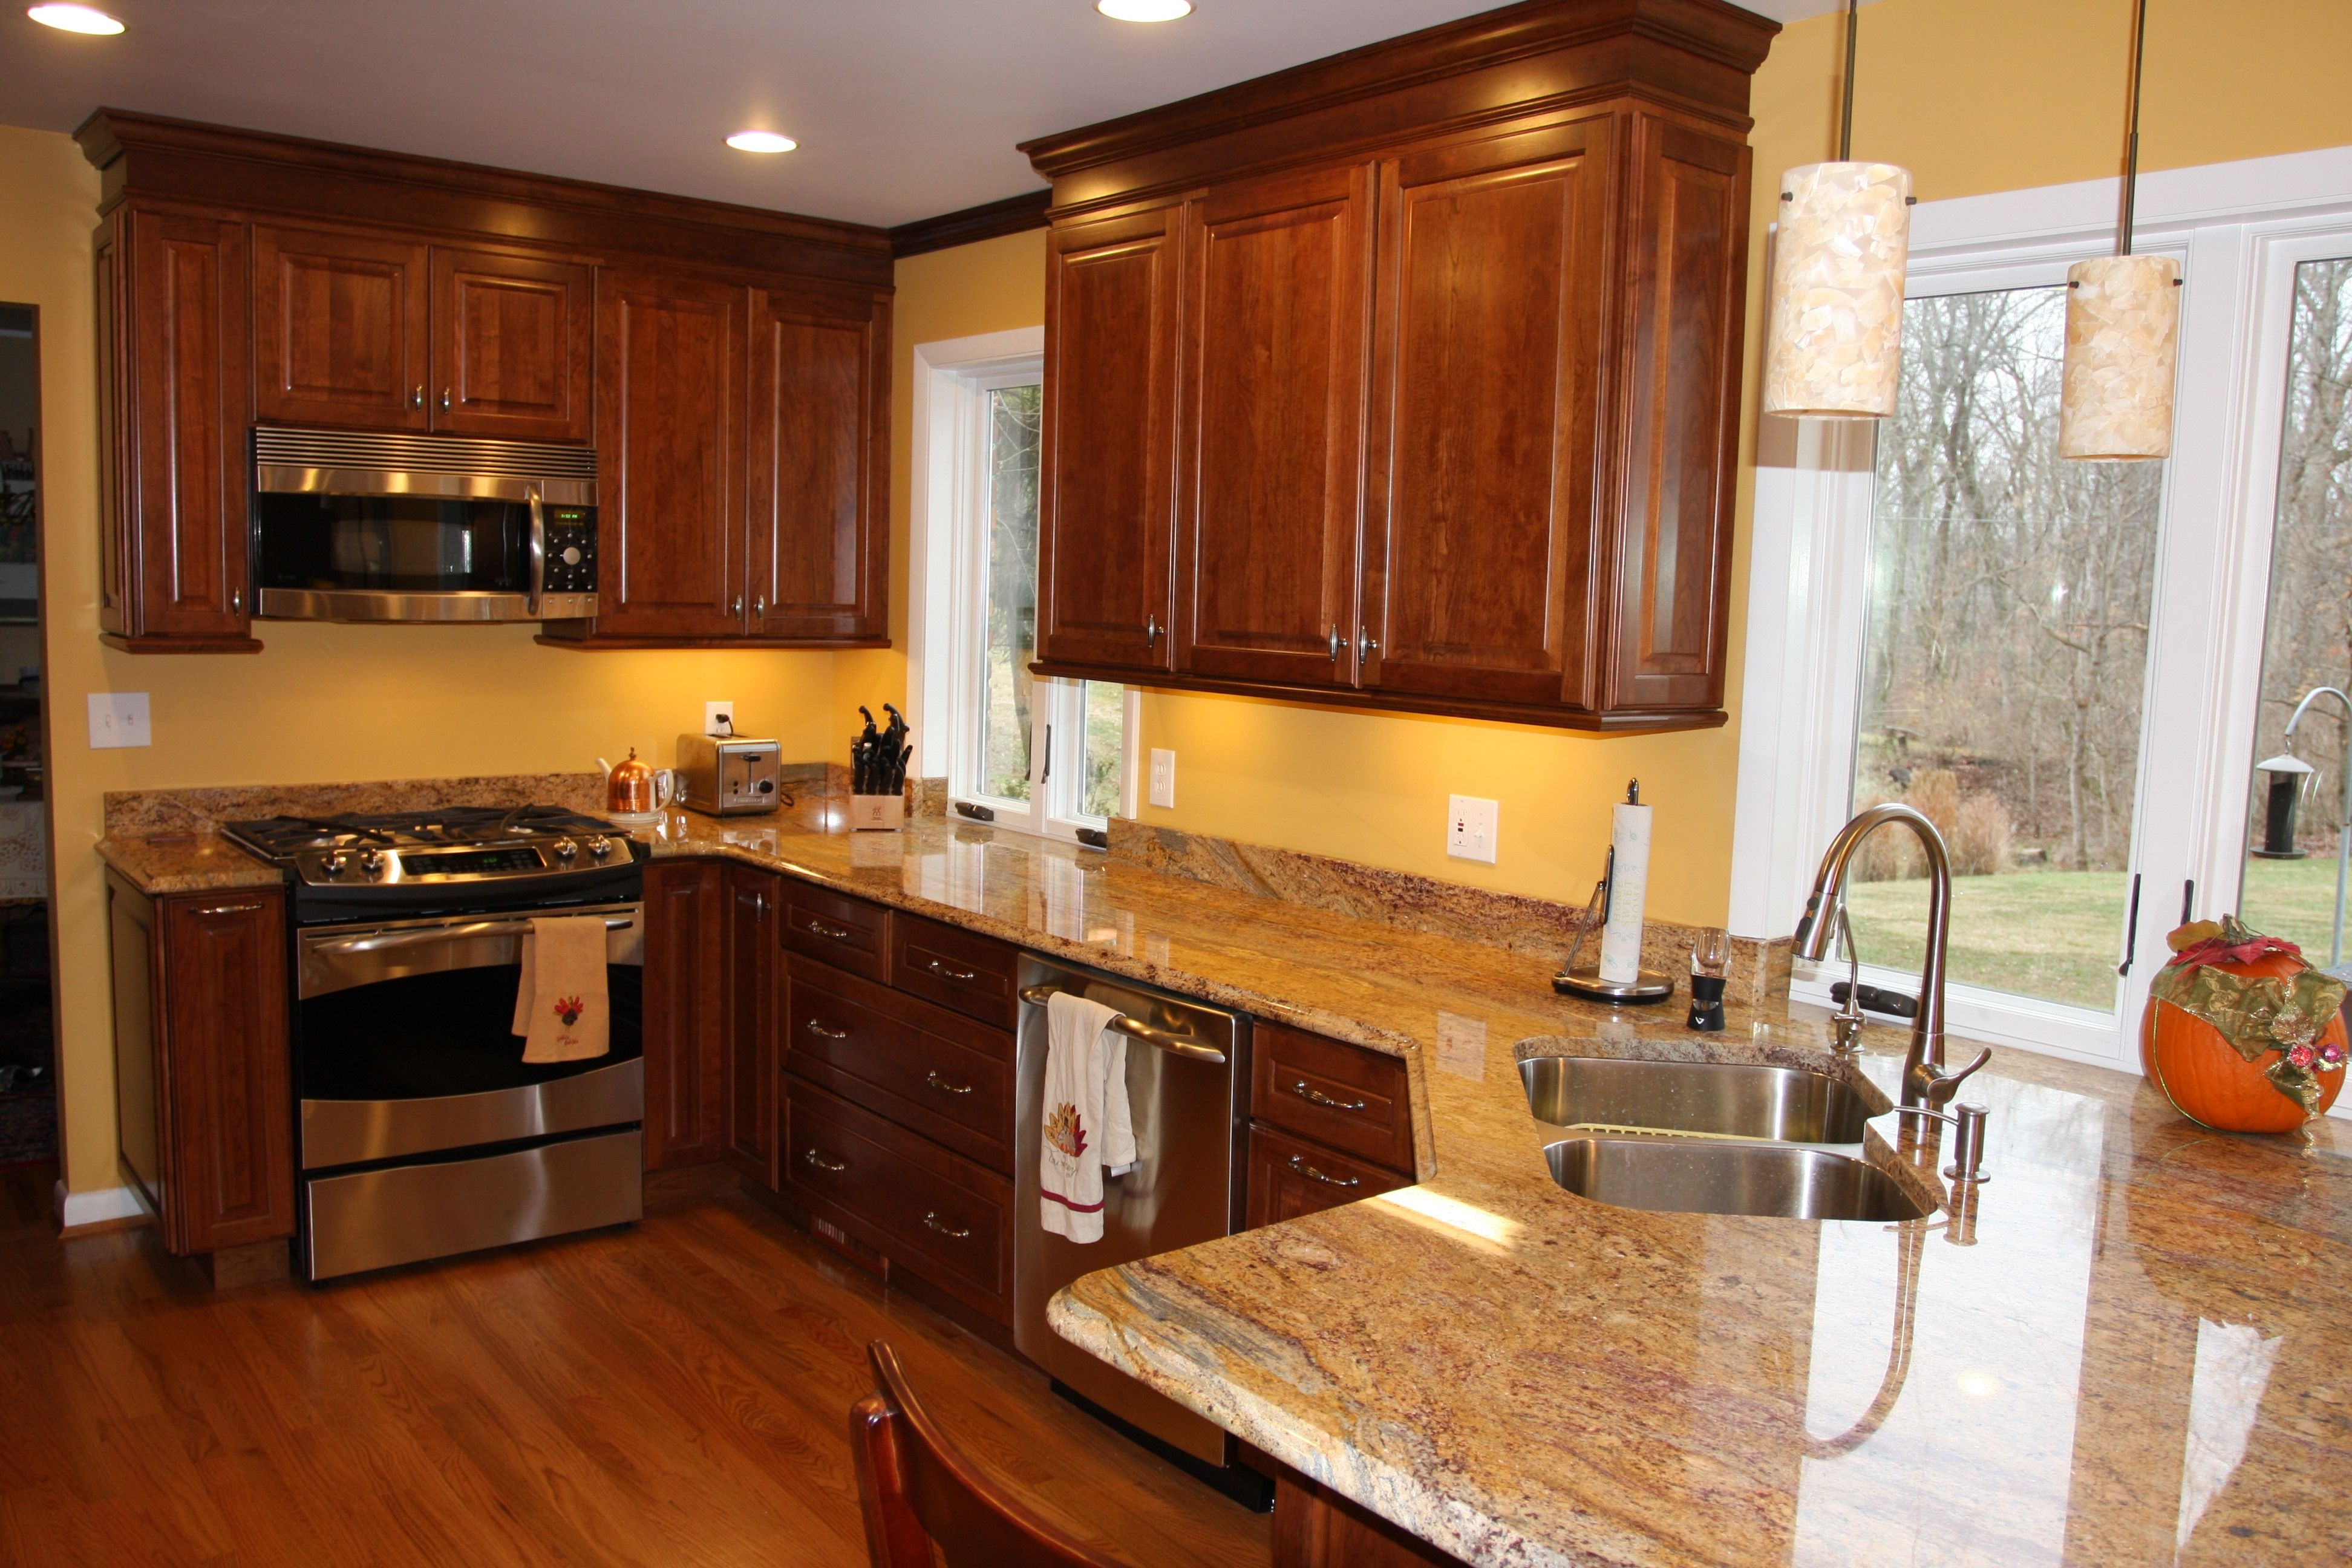 Kitchen Wall Color With Dark Oak Cabinets (With images ...